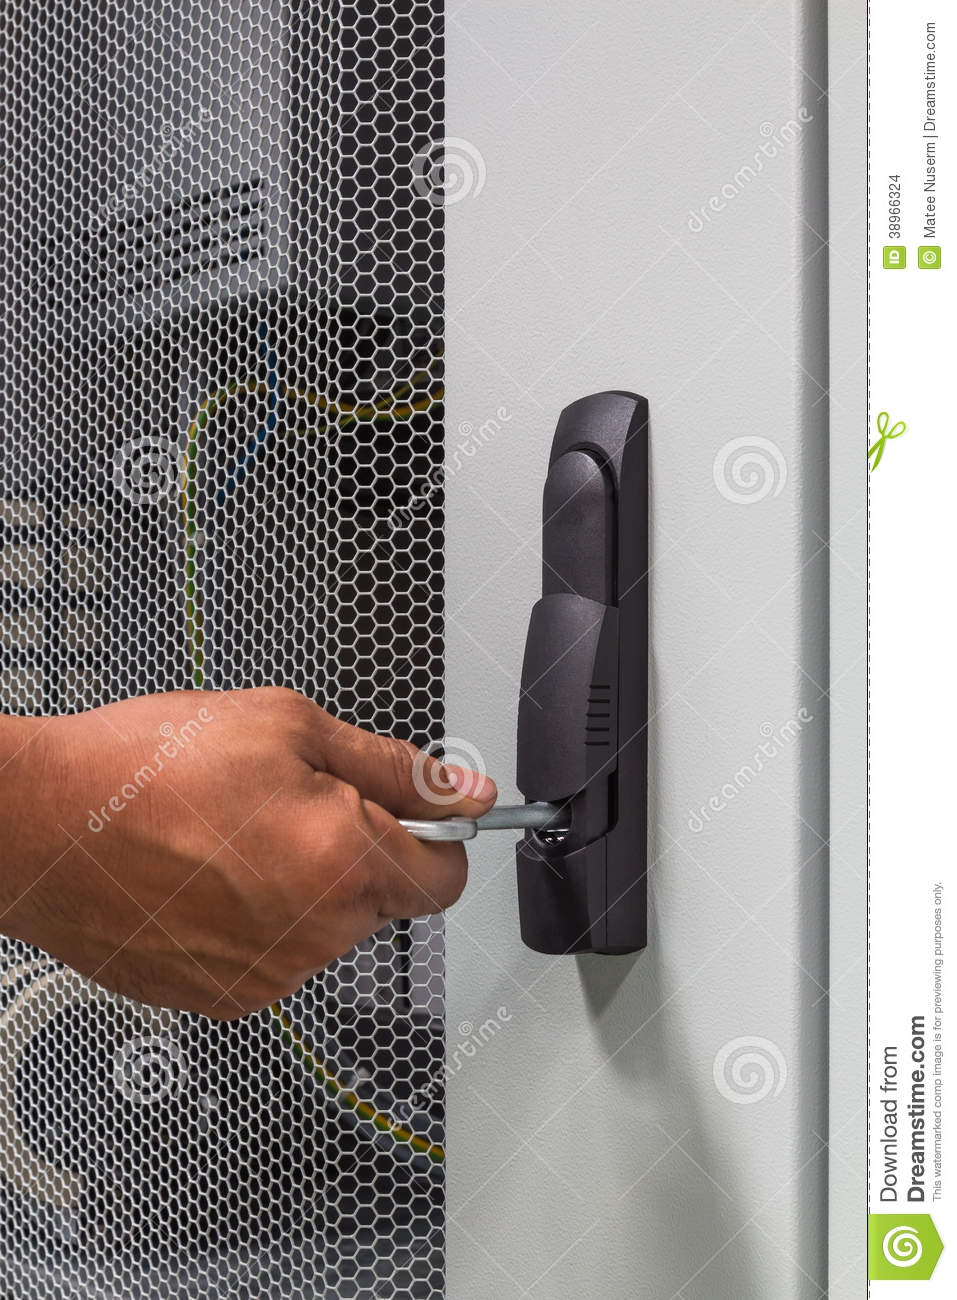 Cabinet Latch Stock Photo Image 38966324